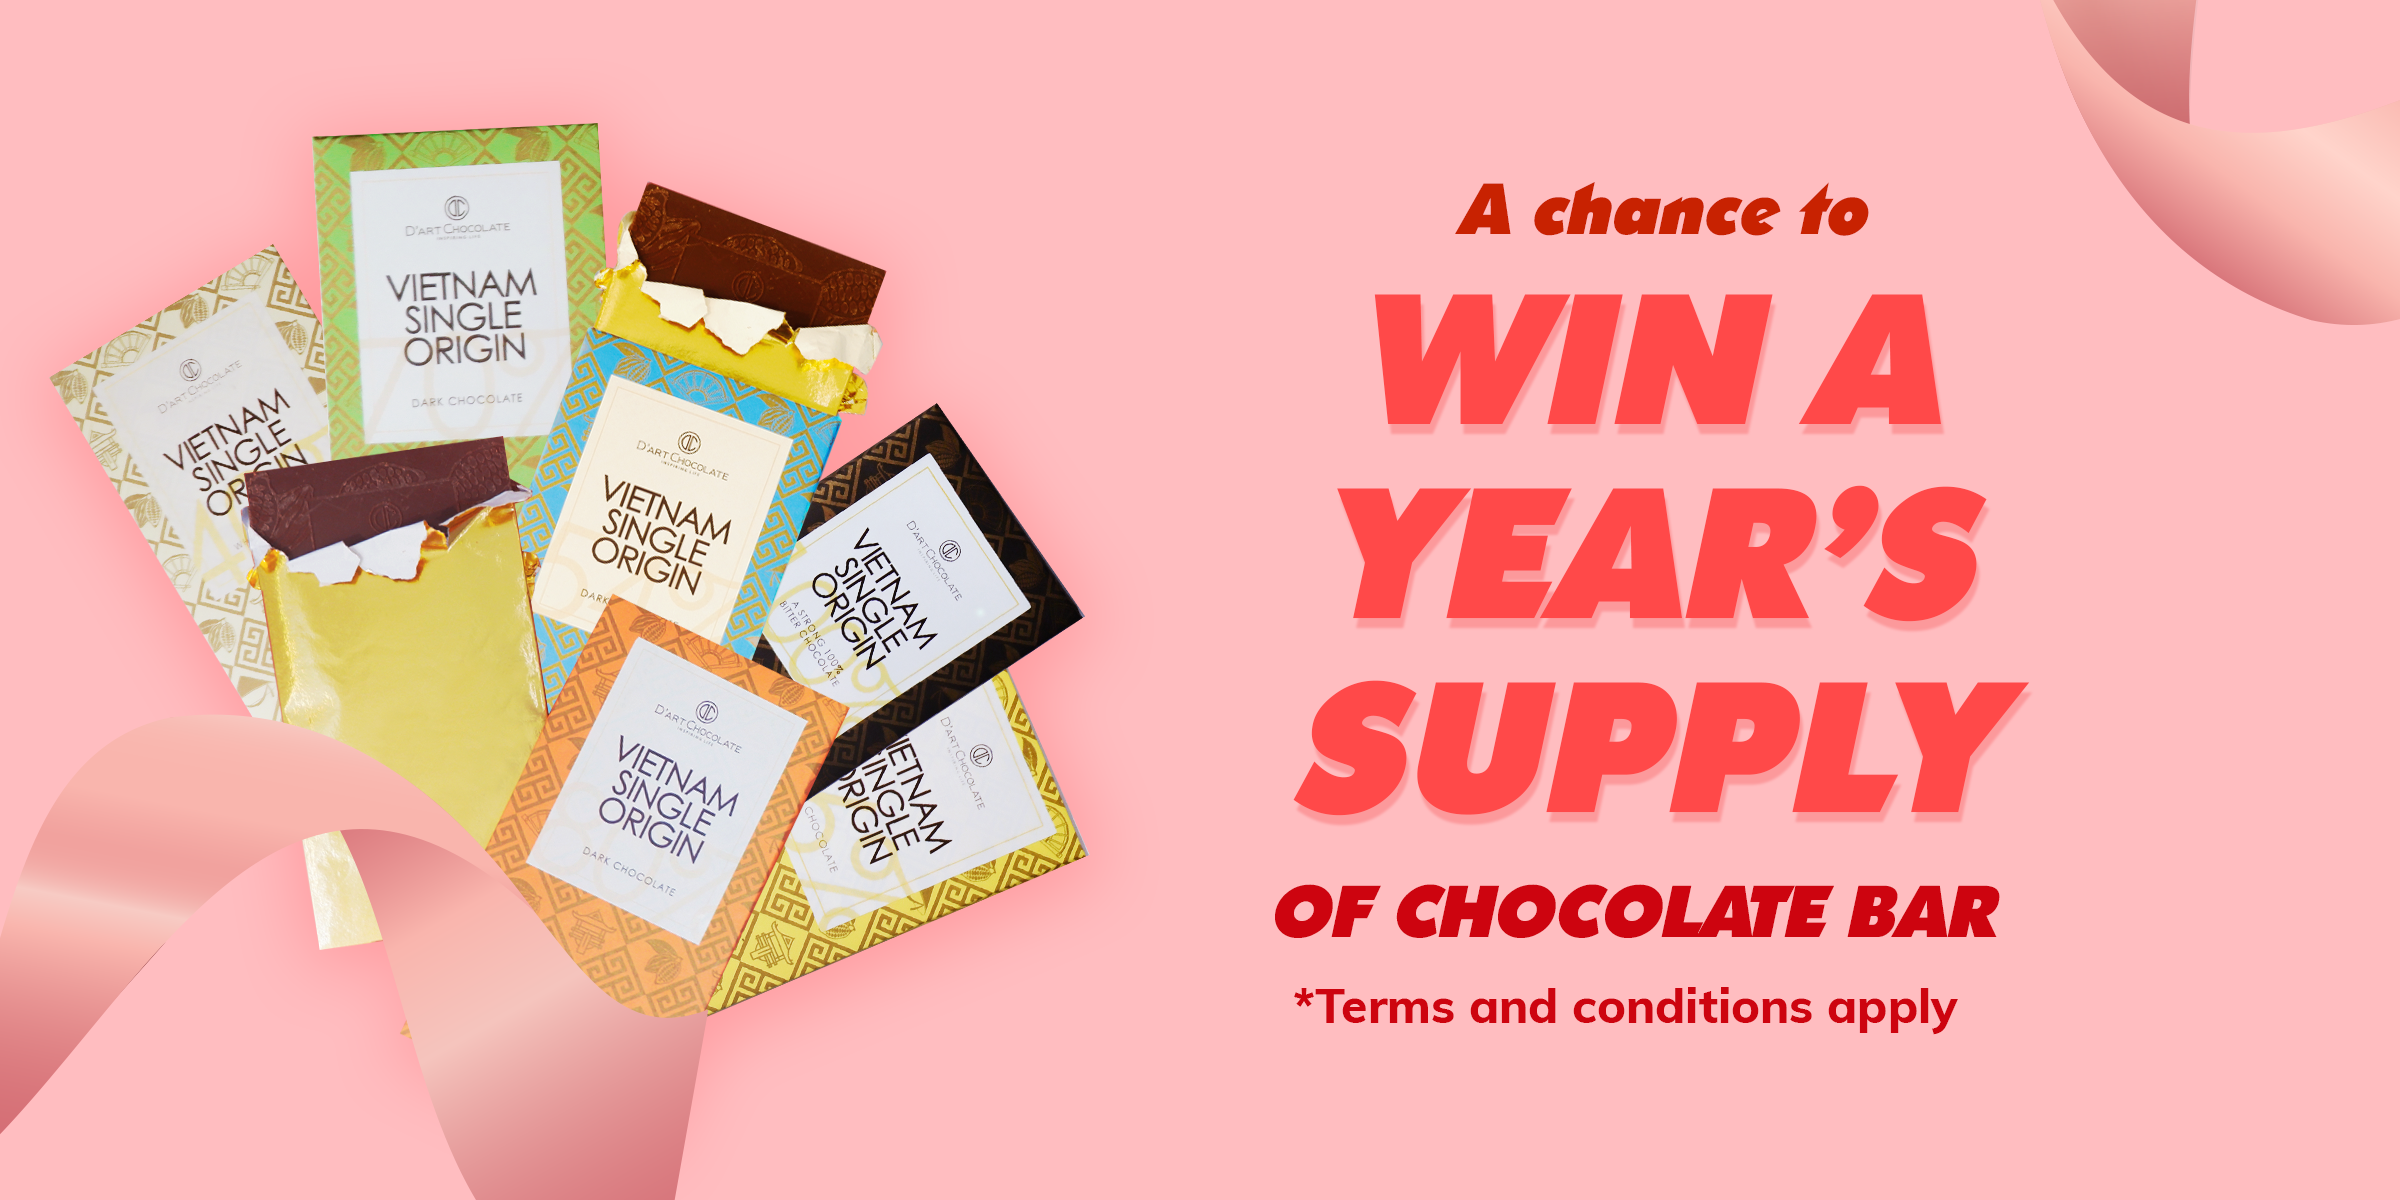 Chance to win one year's supply of chocolate bar from D'Art Chocolate